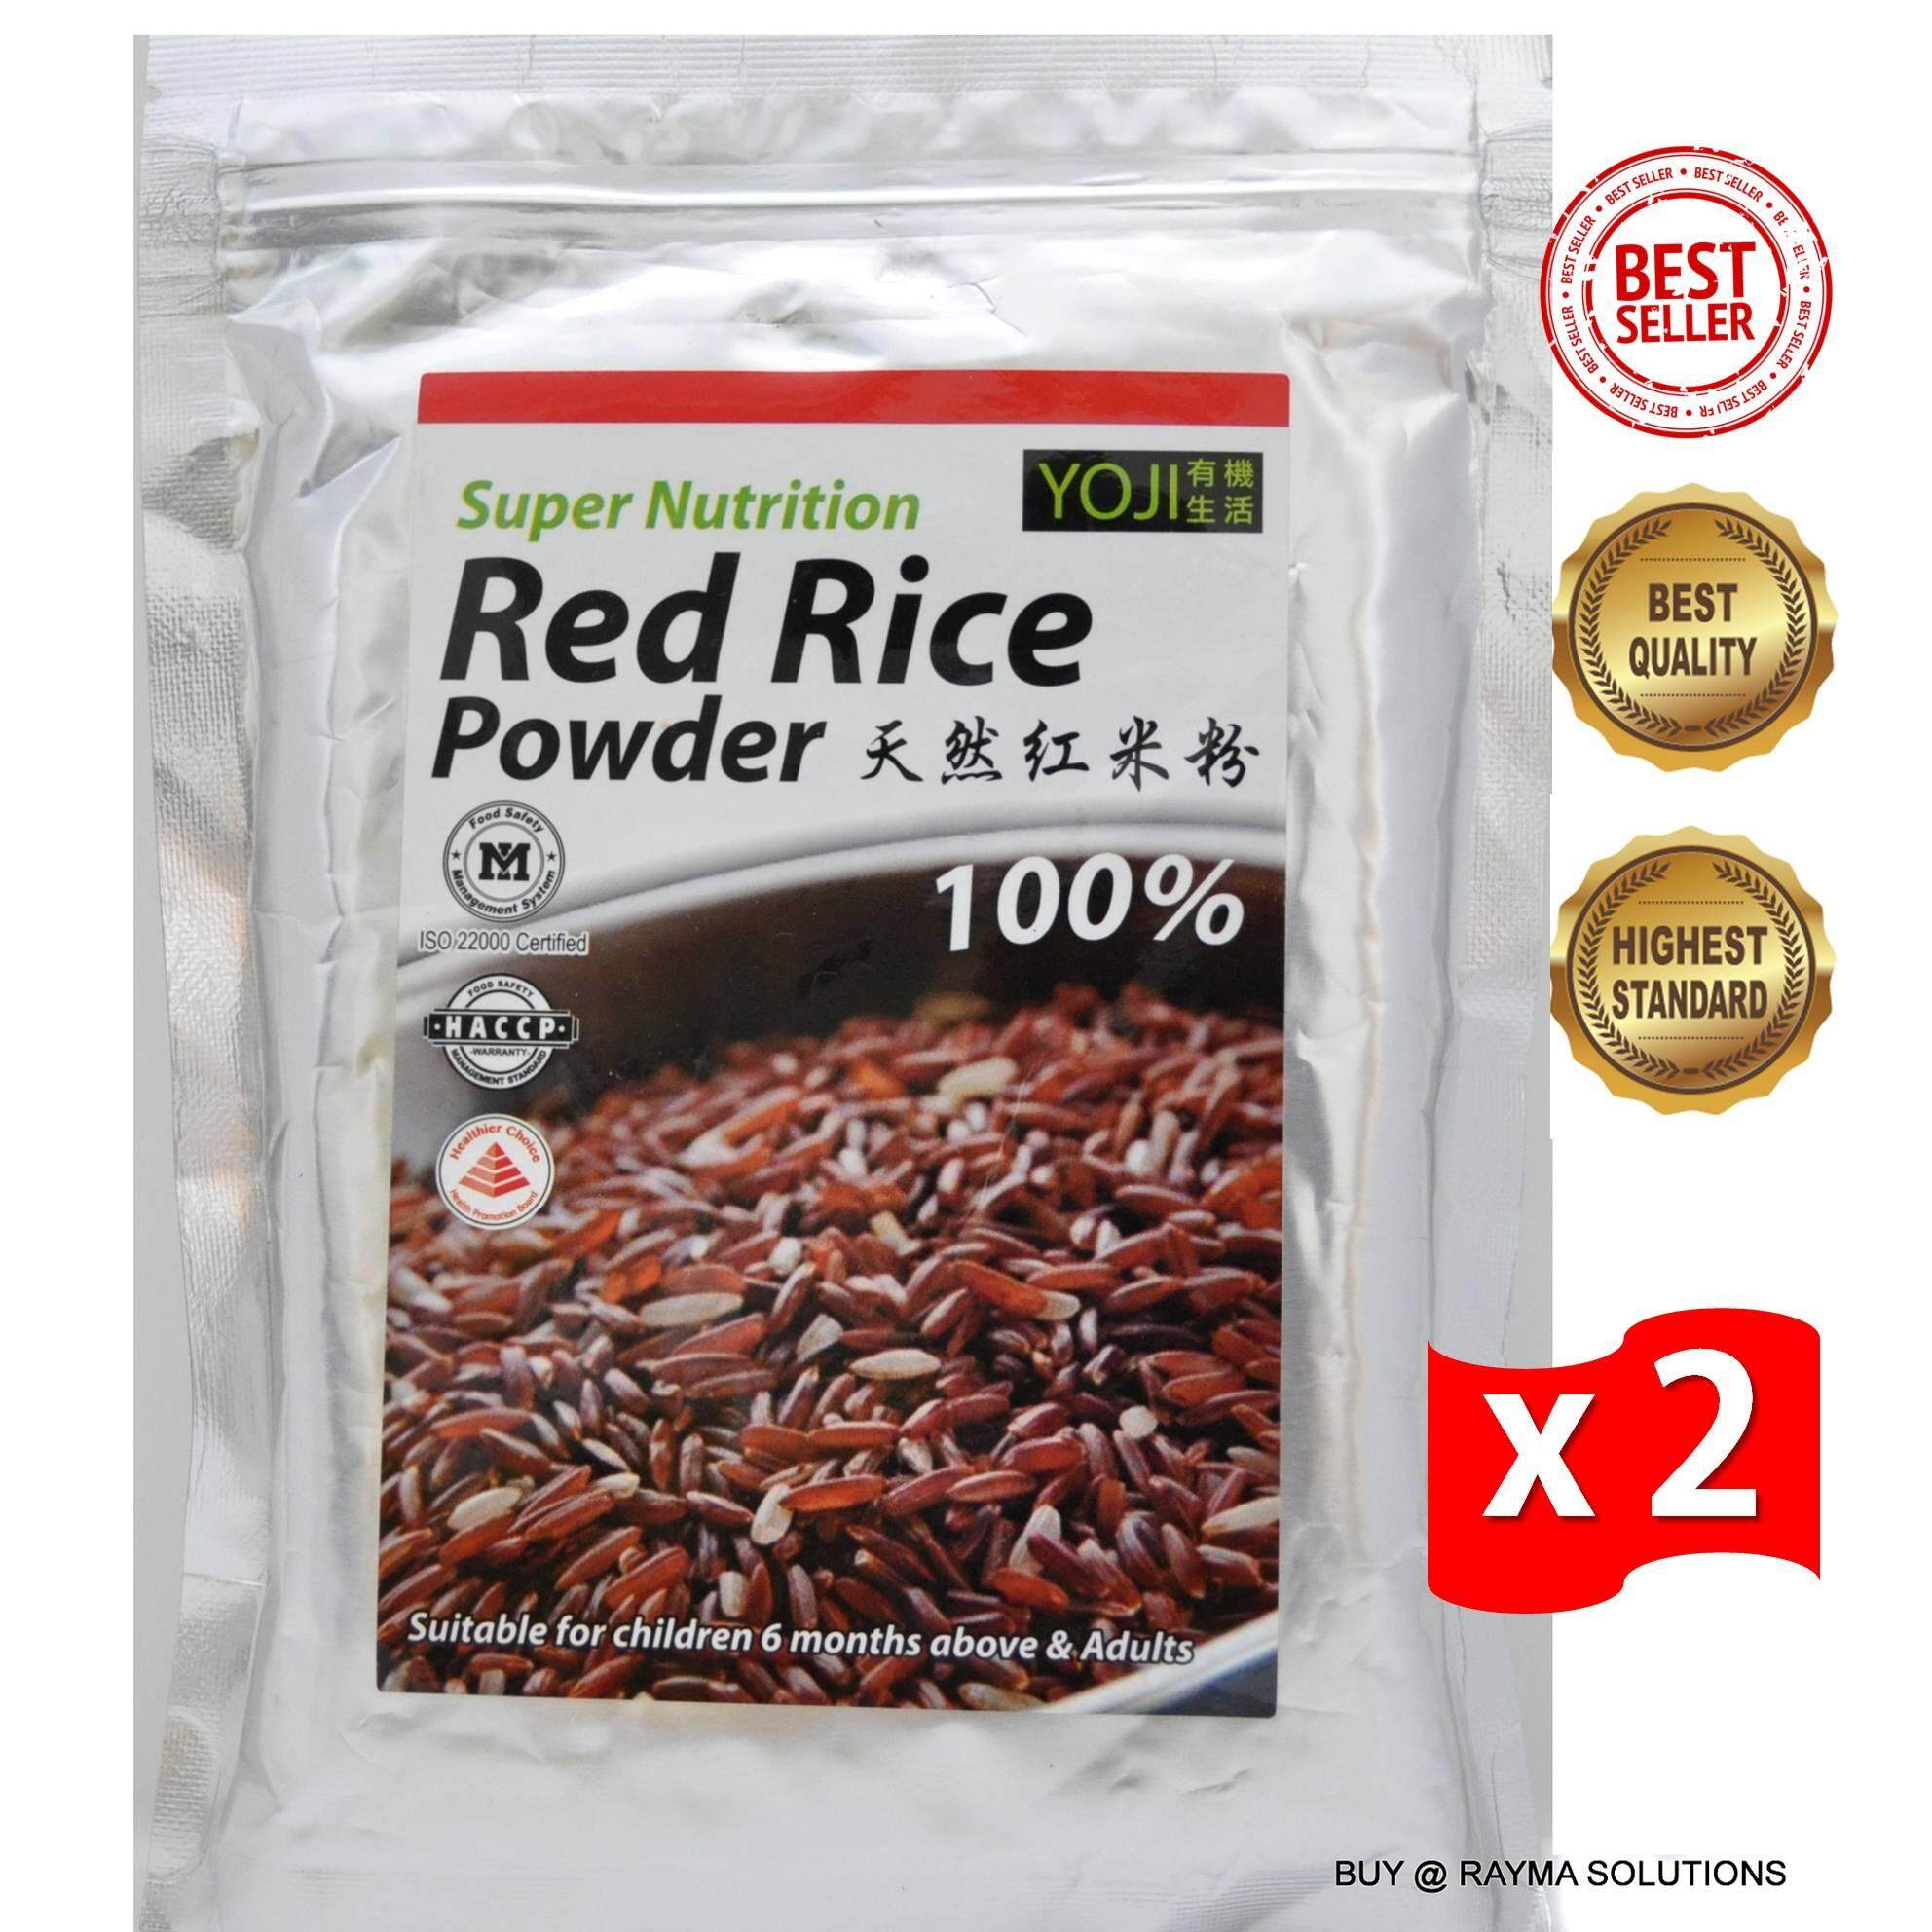 MH FOOD Super Nutrition Red Rice Powder, Suitable for children 6 months above and adults 300g (Twin Pack)